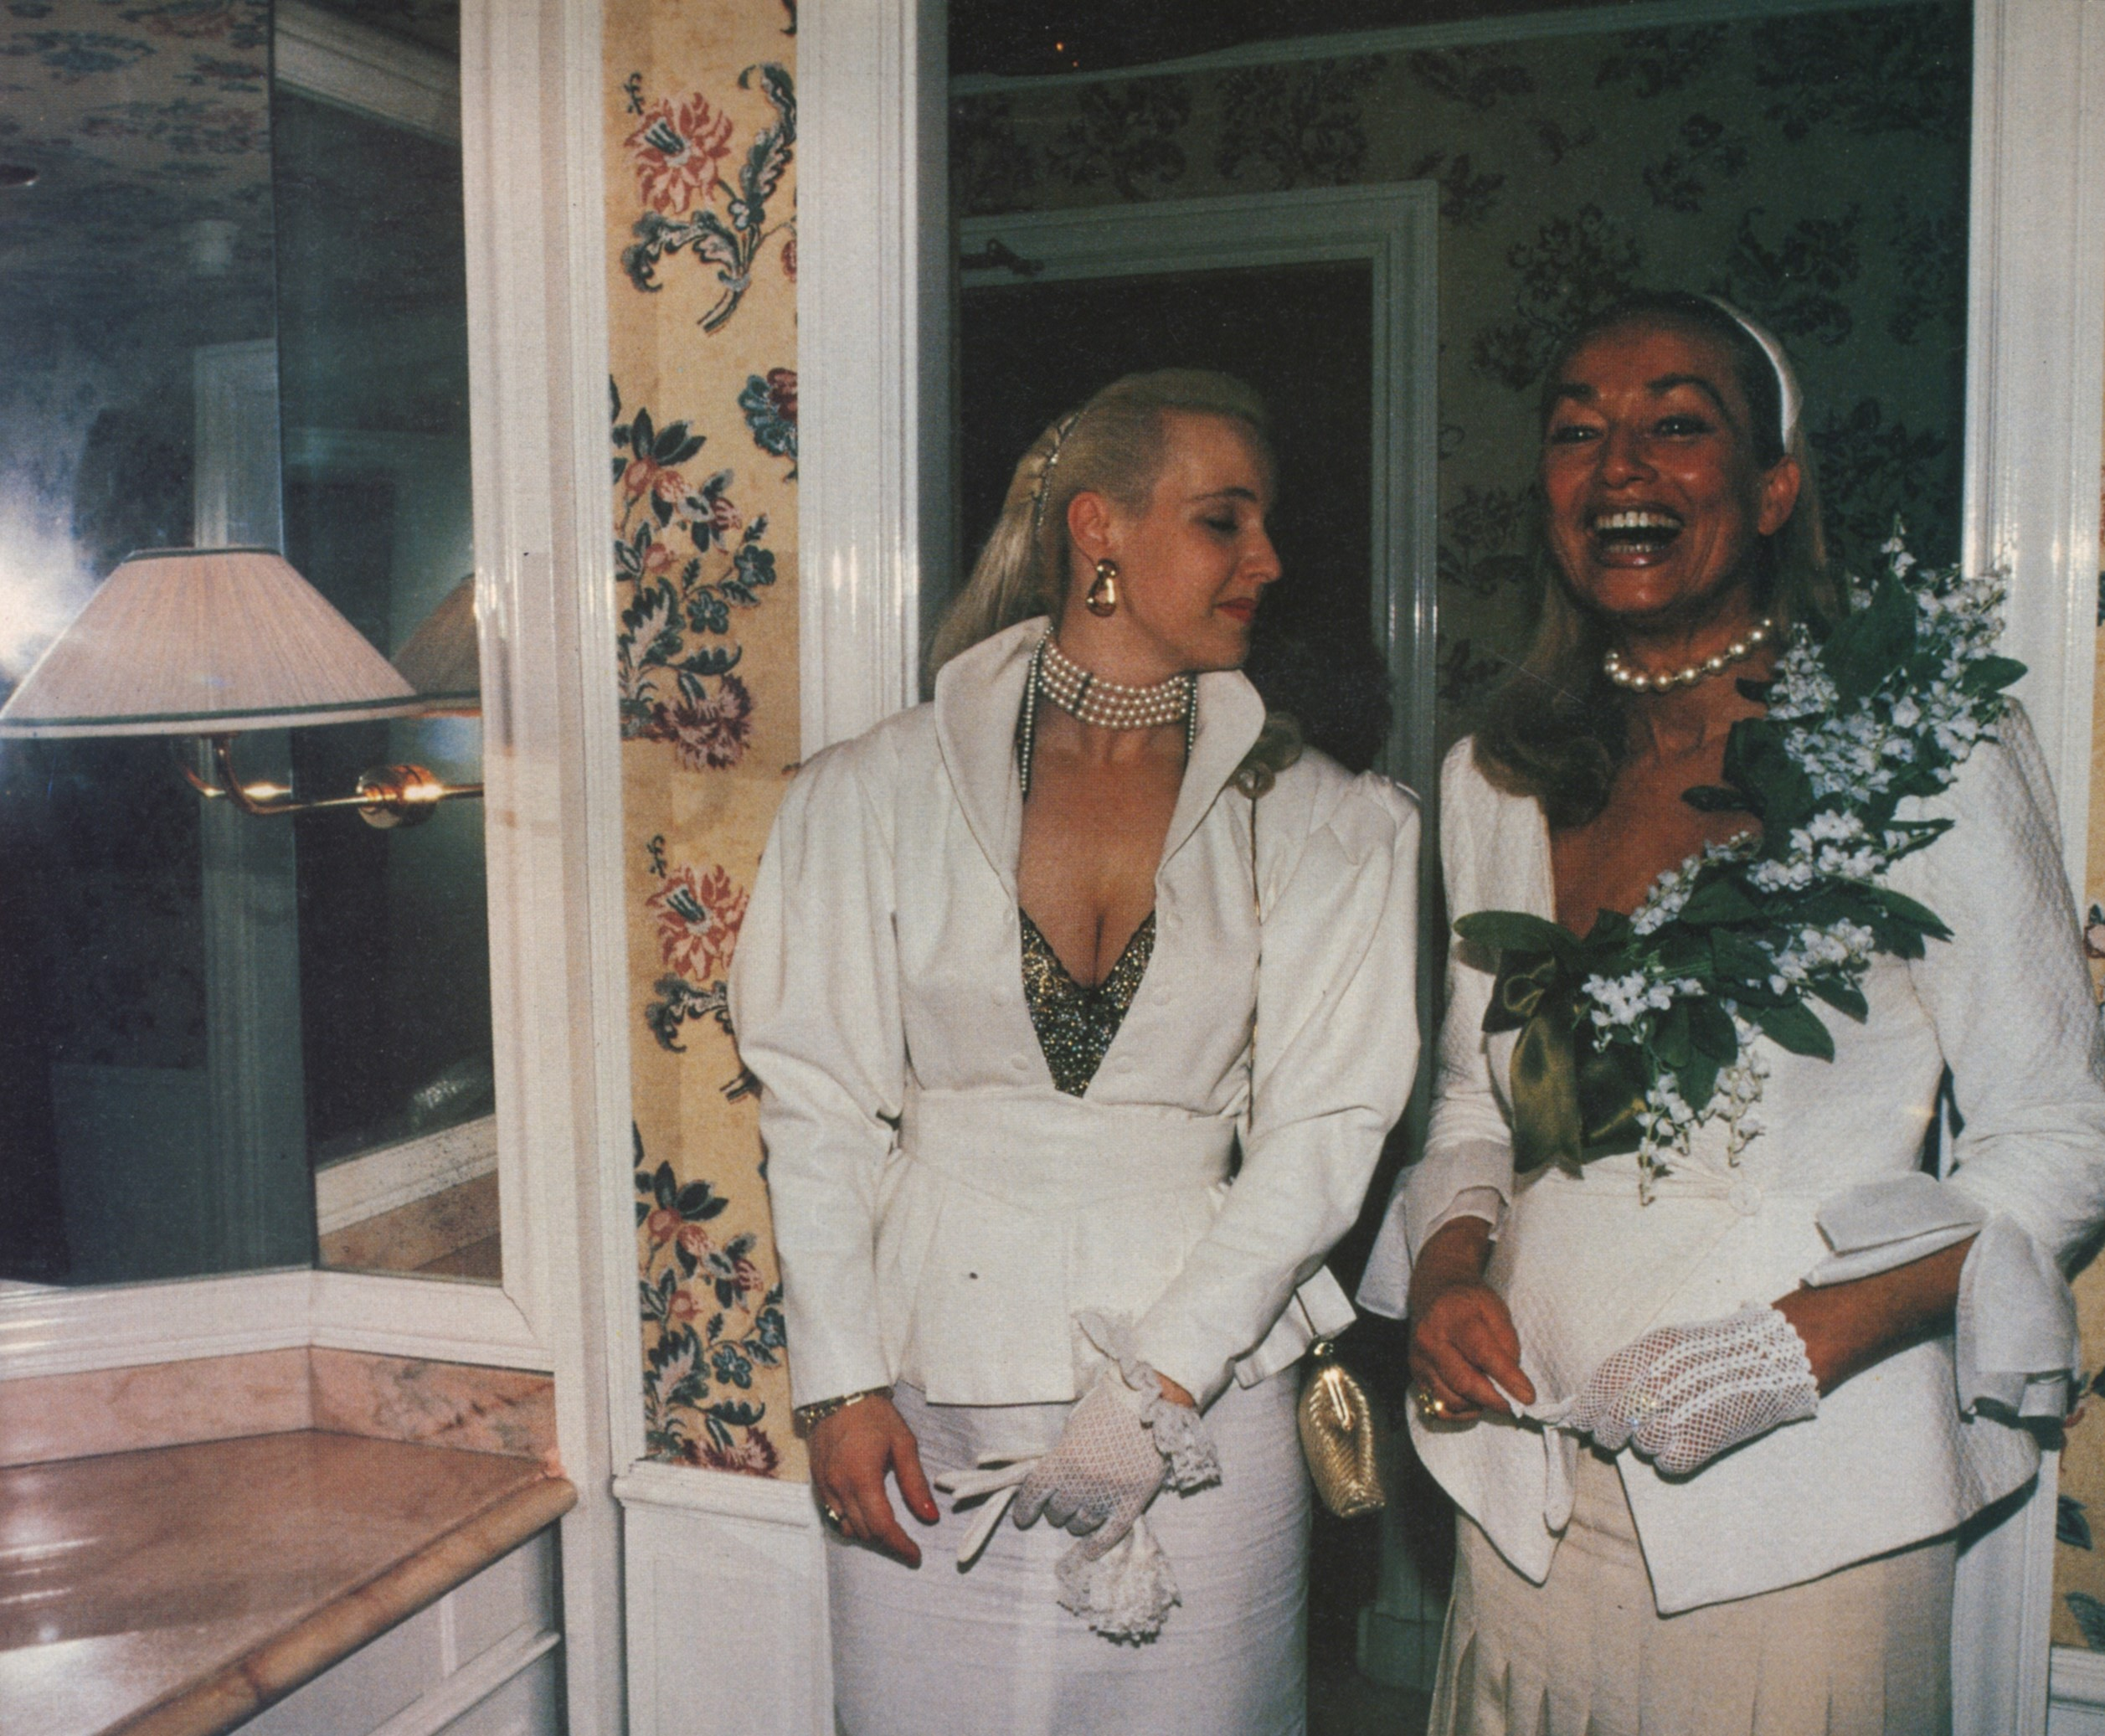 german princess and her lady in waiting carlton hotel cannes 1997 photography jessica craig martin id the bathroom issue no.205